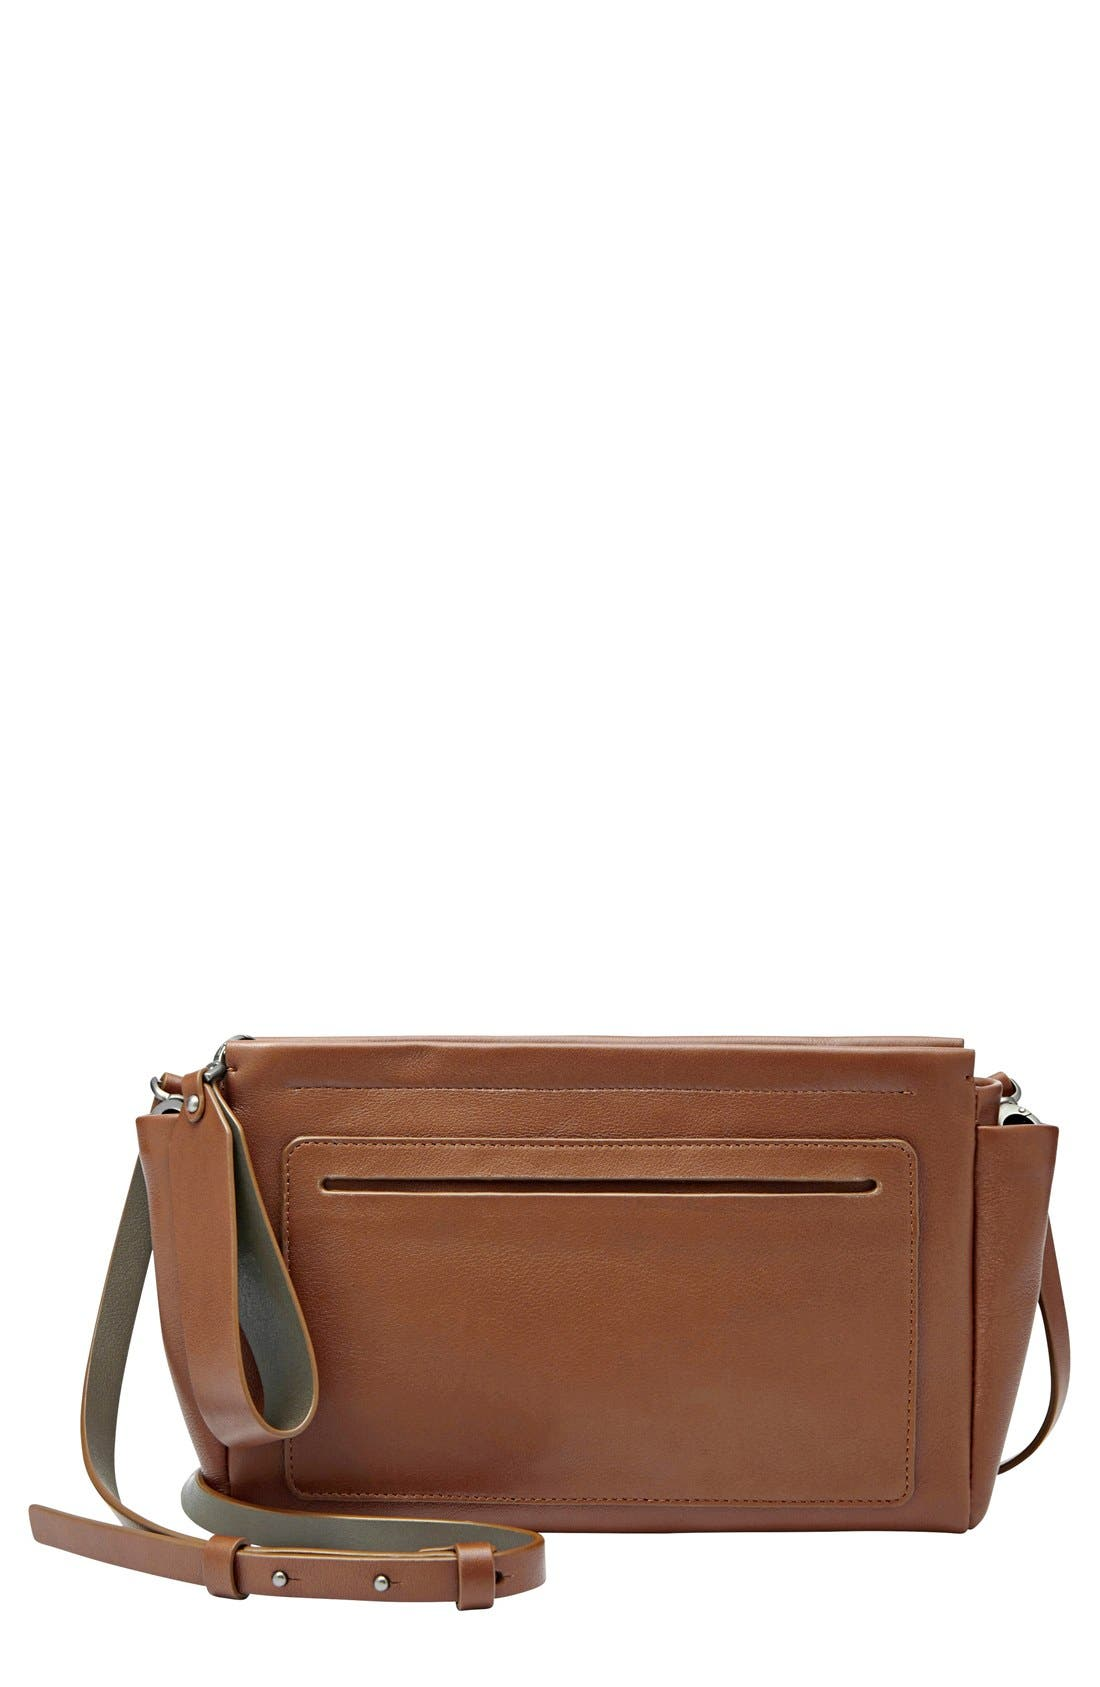 Alternate Image 1 Selected - Skagen 'Dorte' Convertible Crossbody Bag